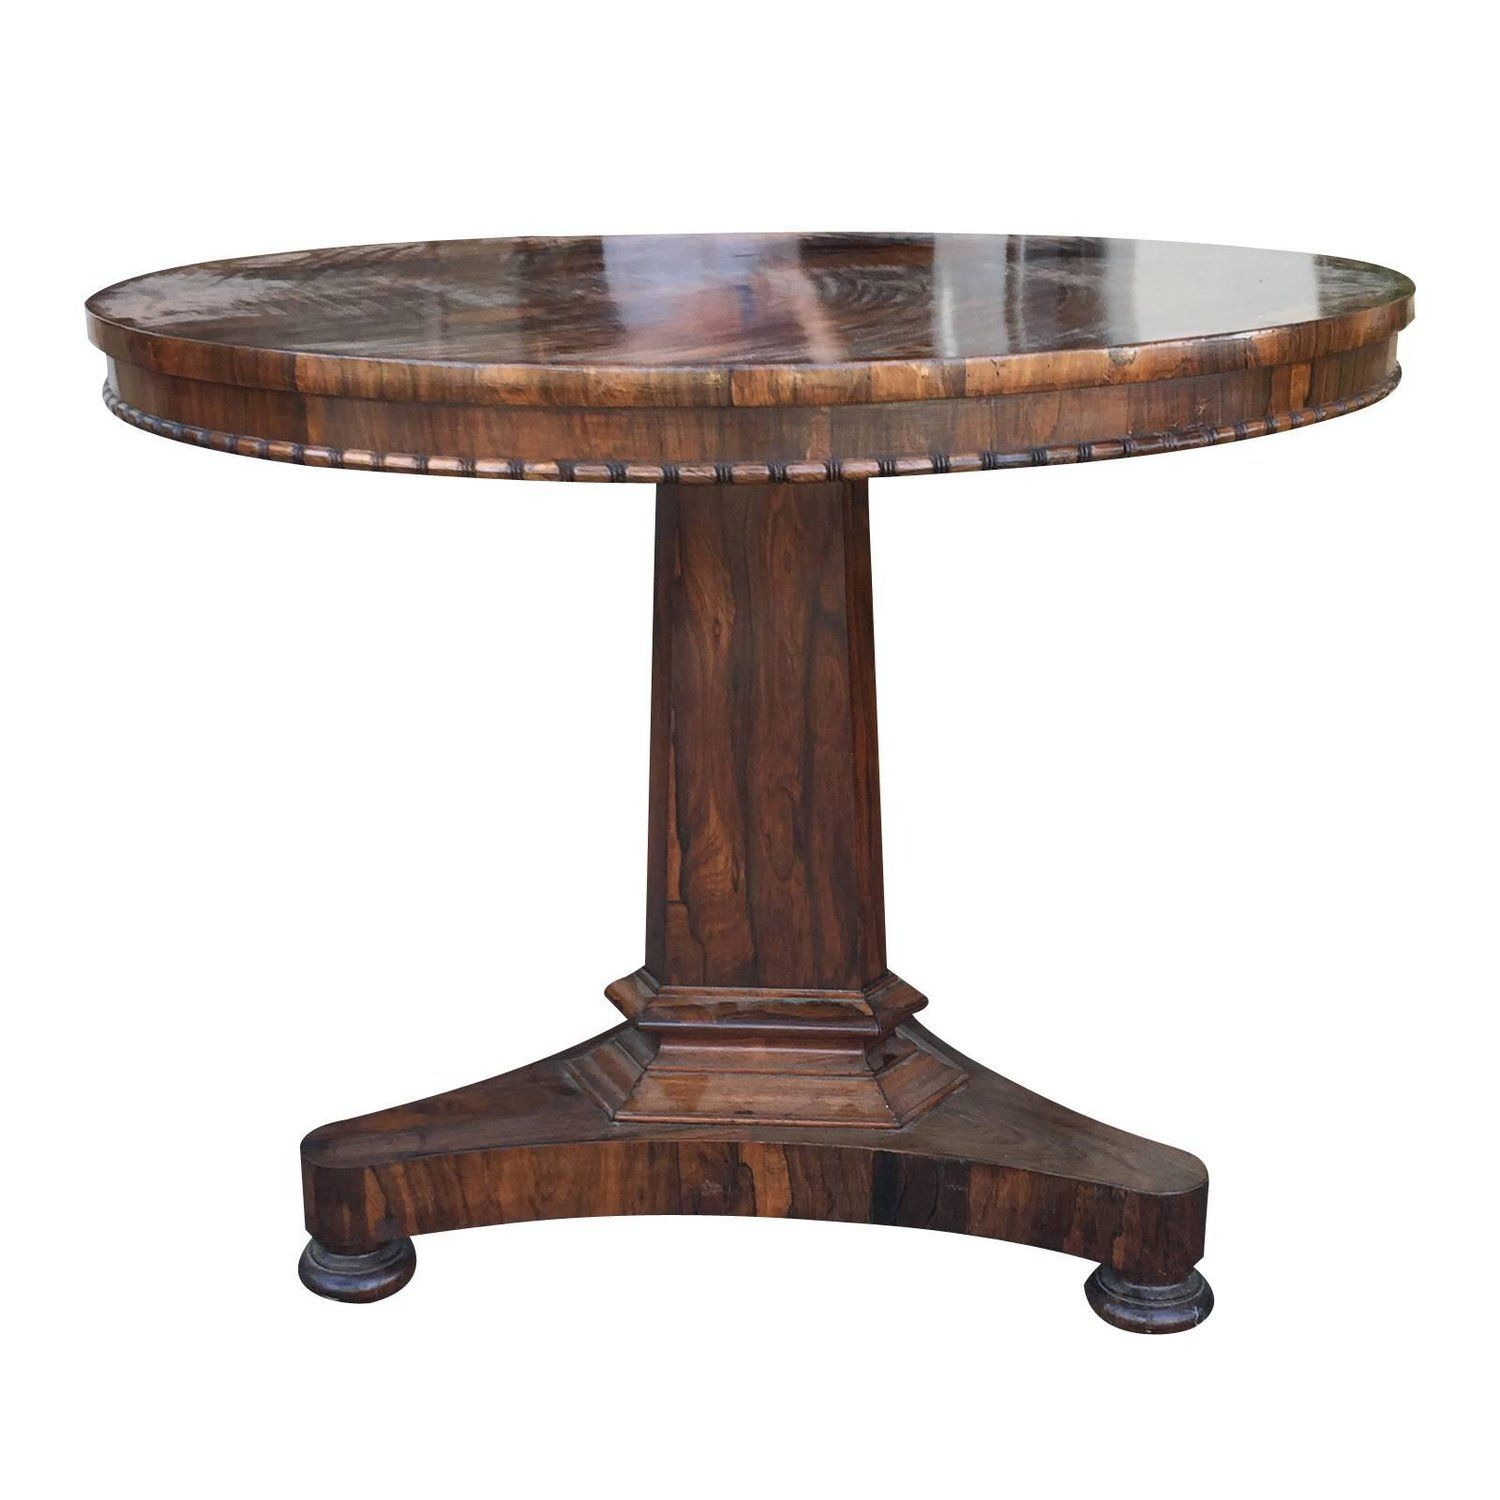 19Th Century Miles & Edwards English Regency Rosewood Centre Table